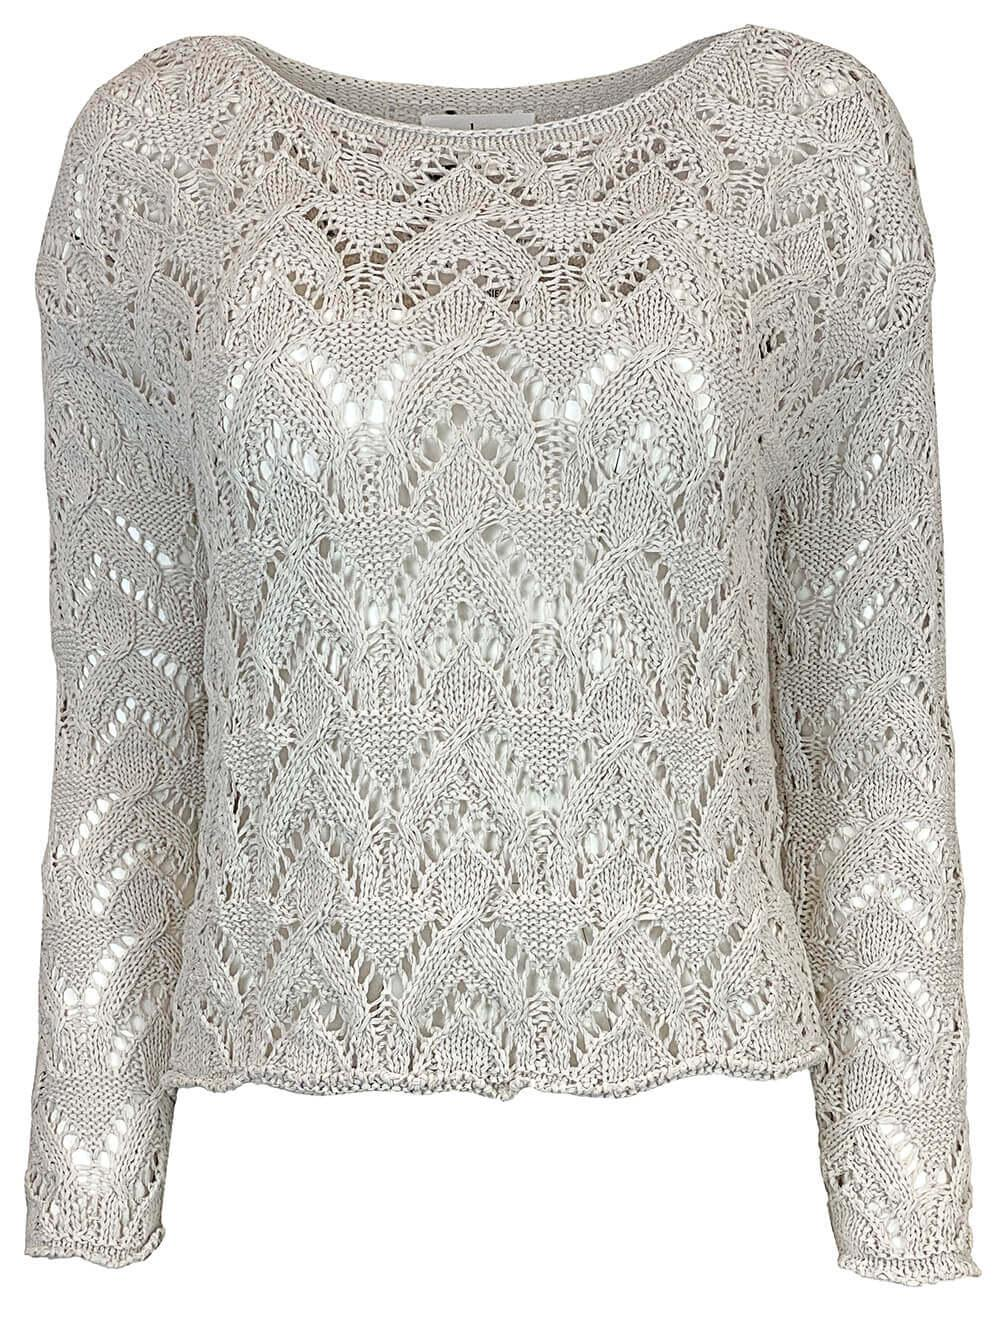 Cotton Open Crochet Sweater